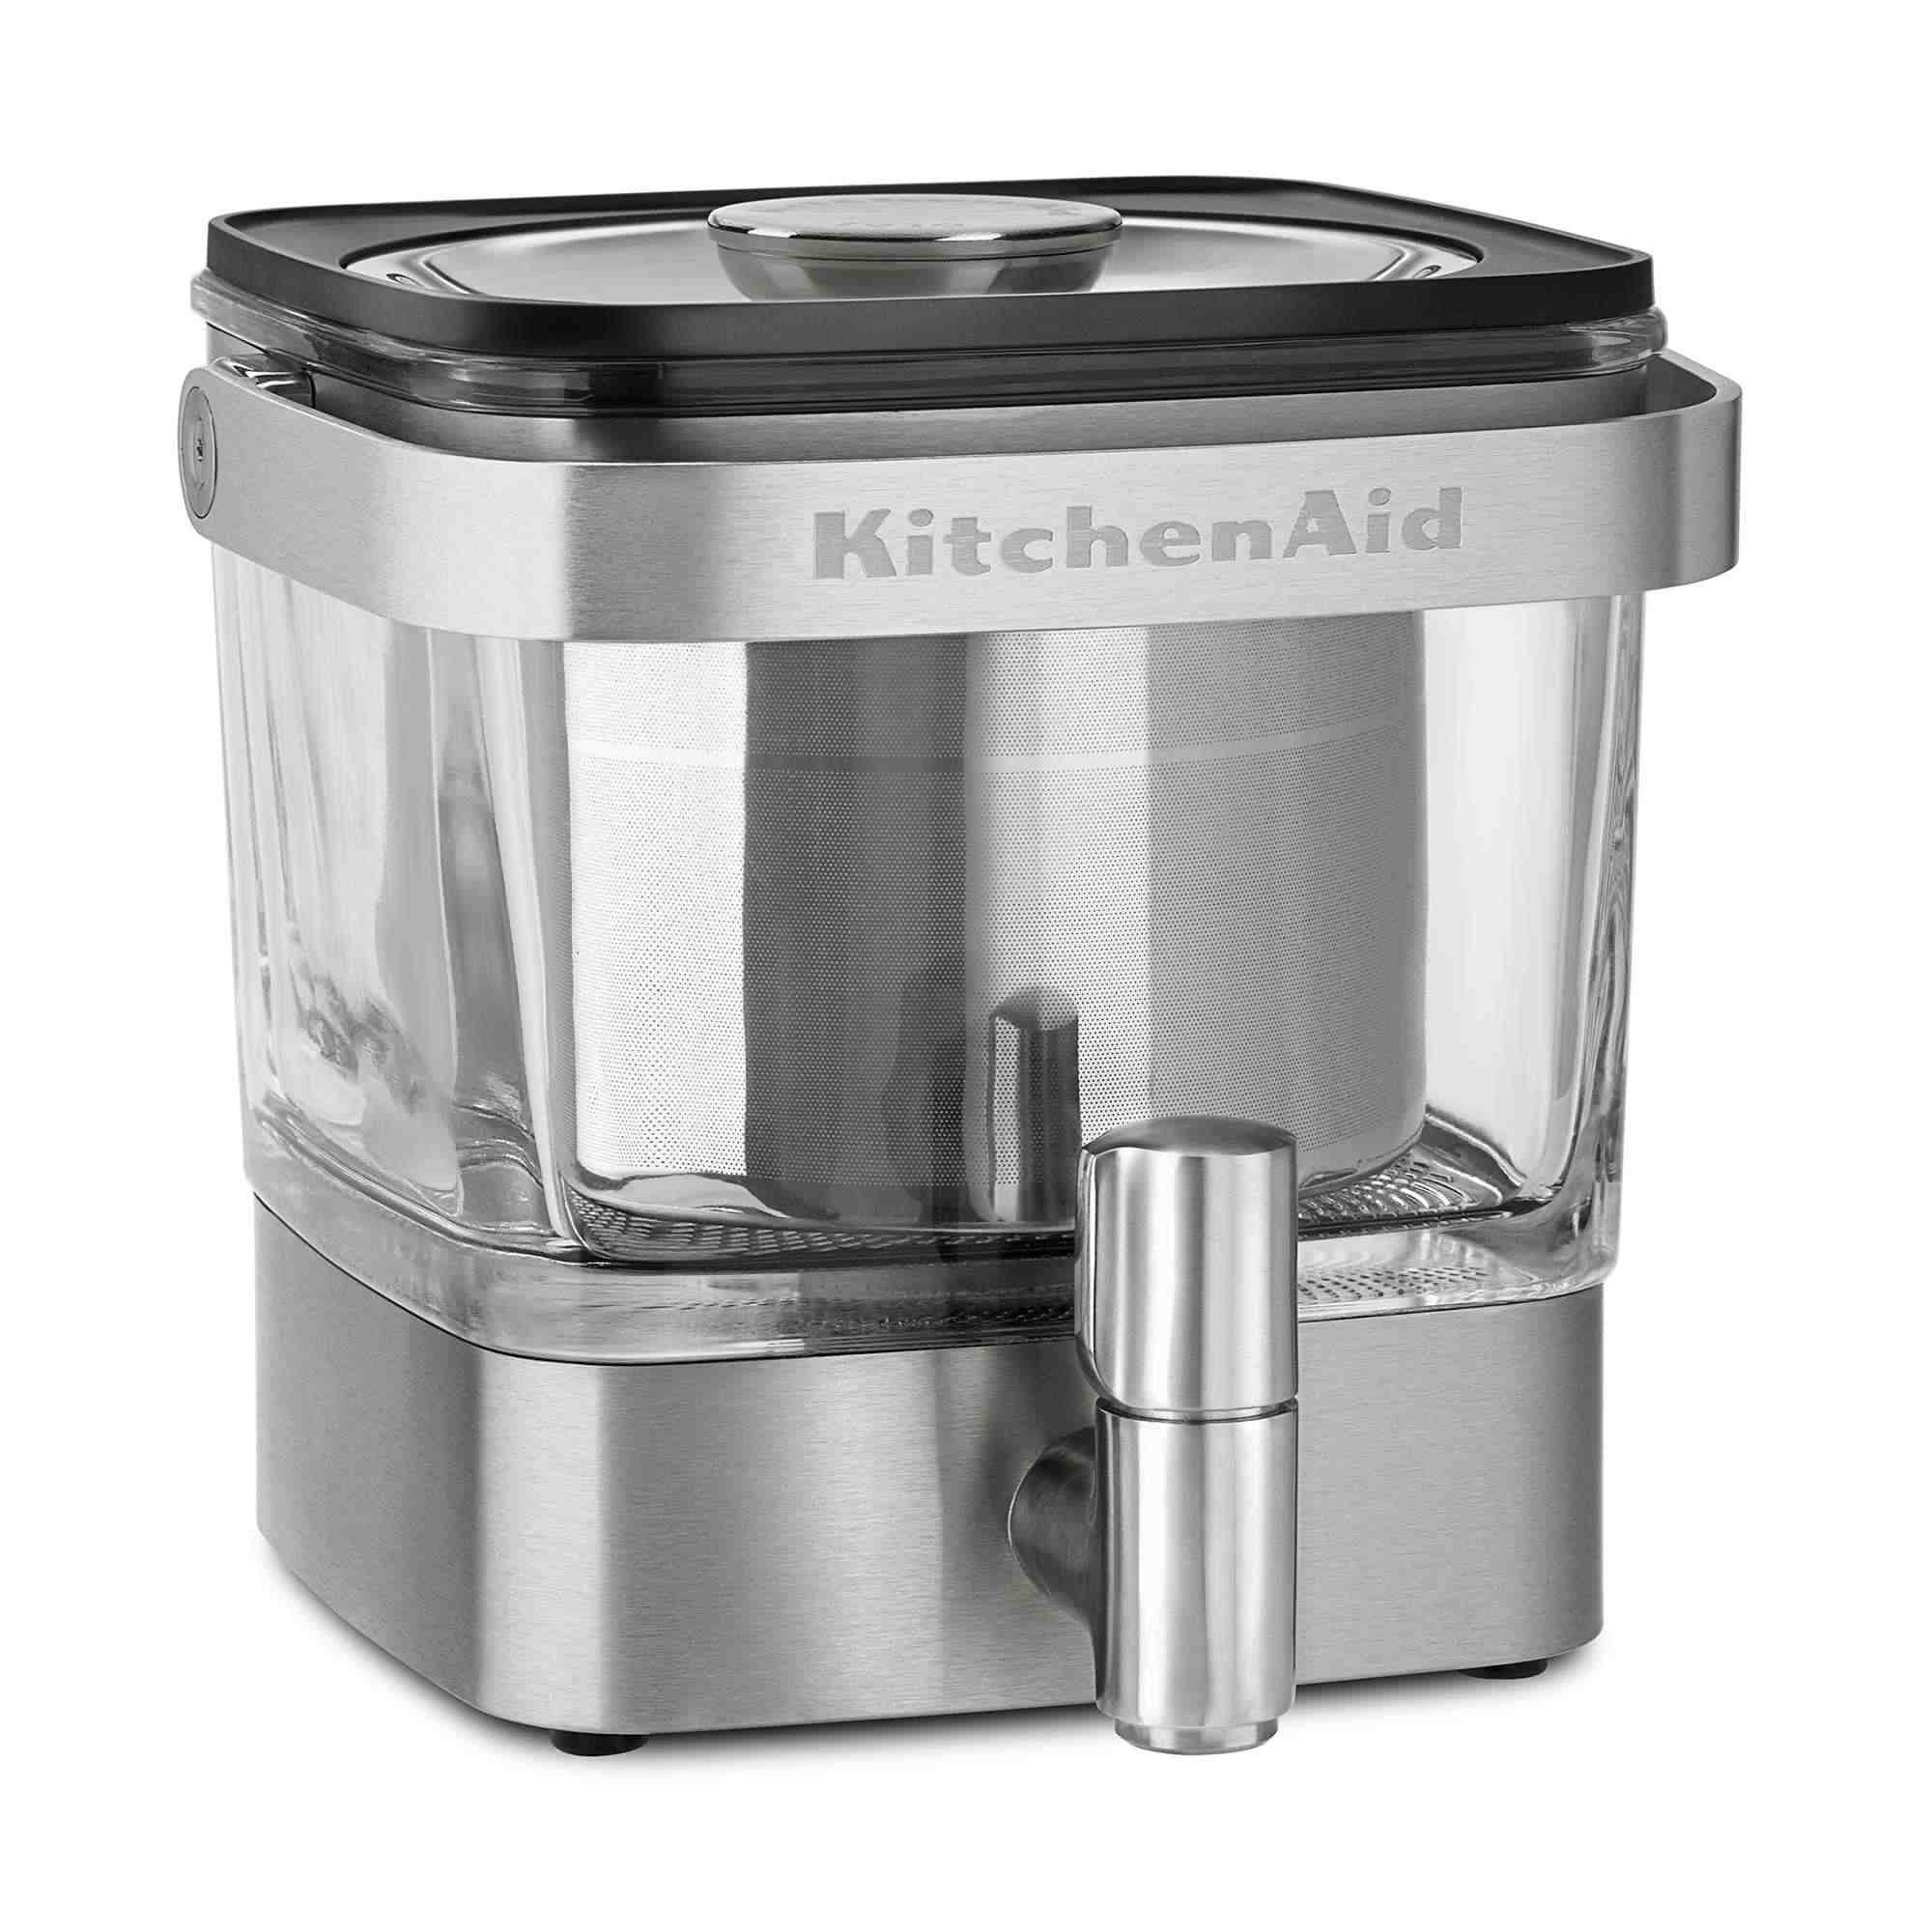 Best For Large Quantities KitchenAid Cold Brew Coffee Maker